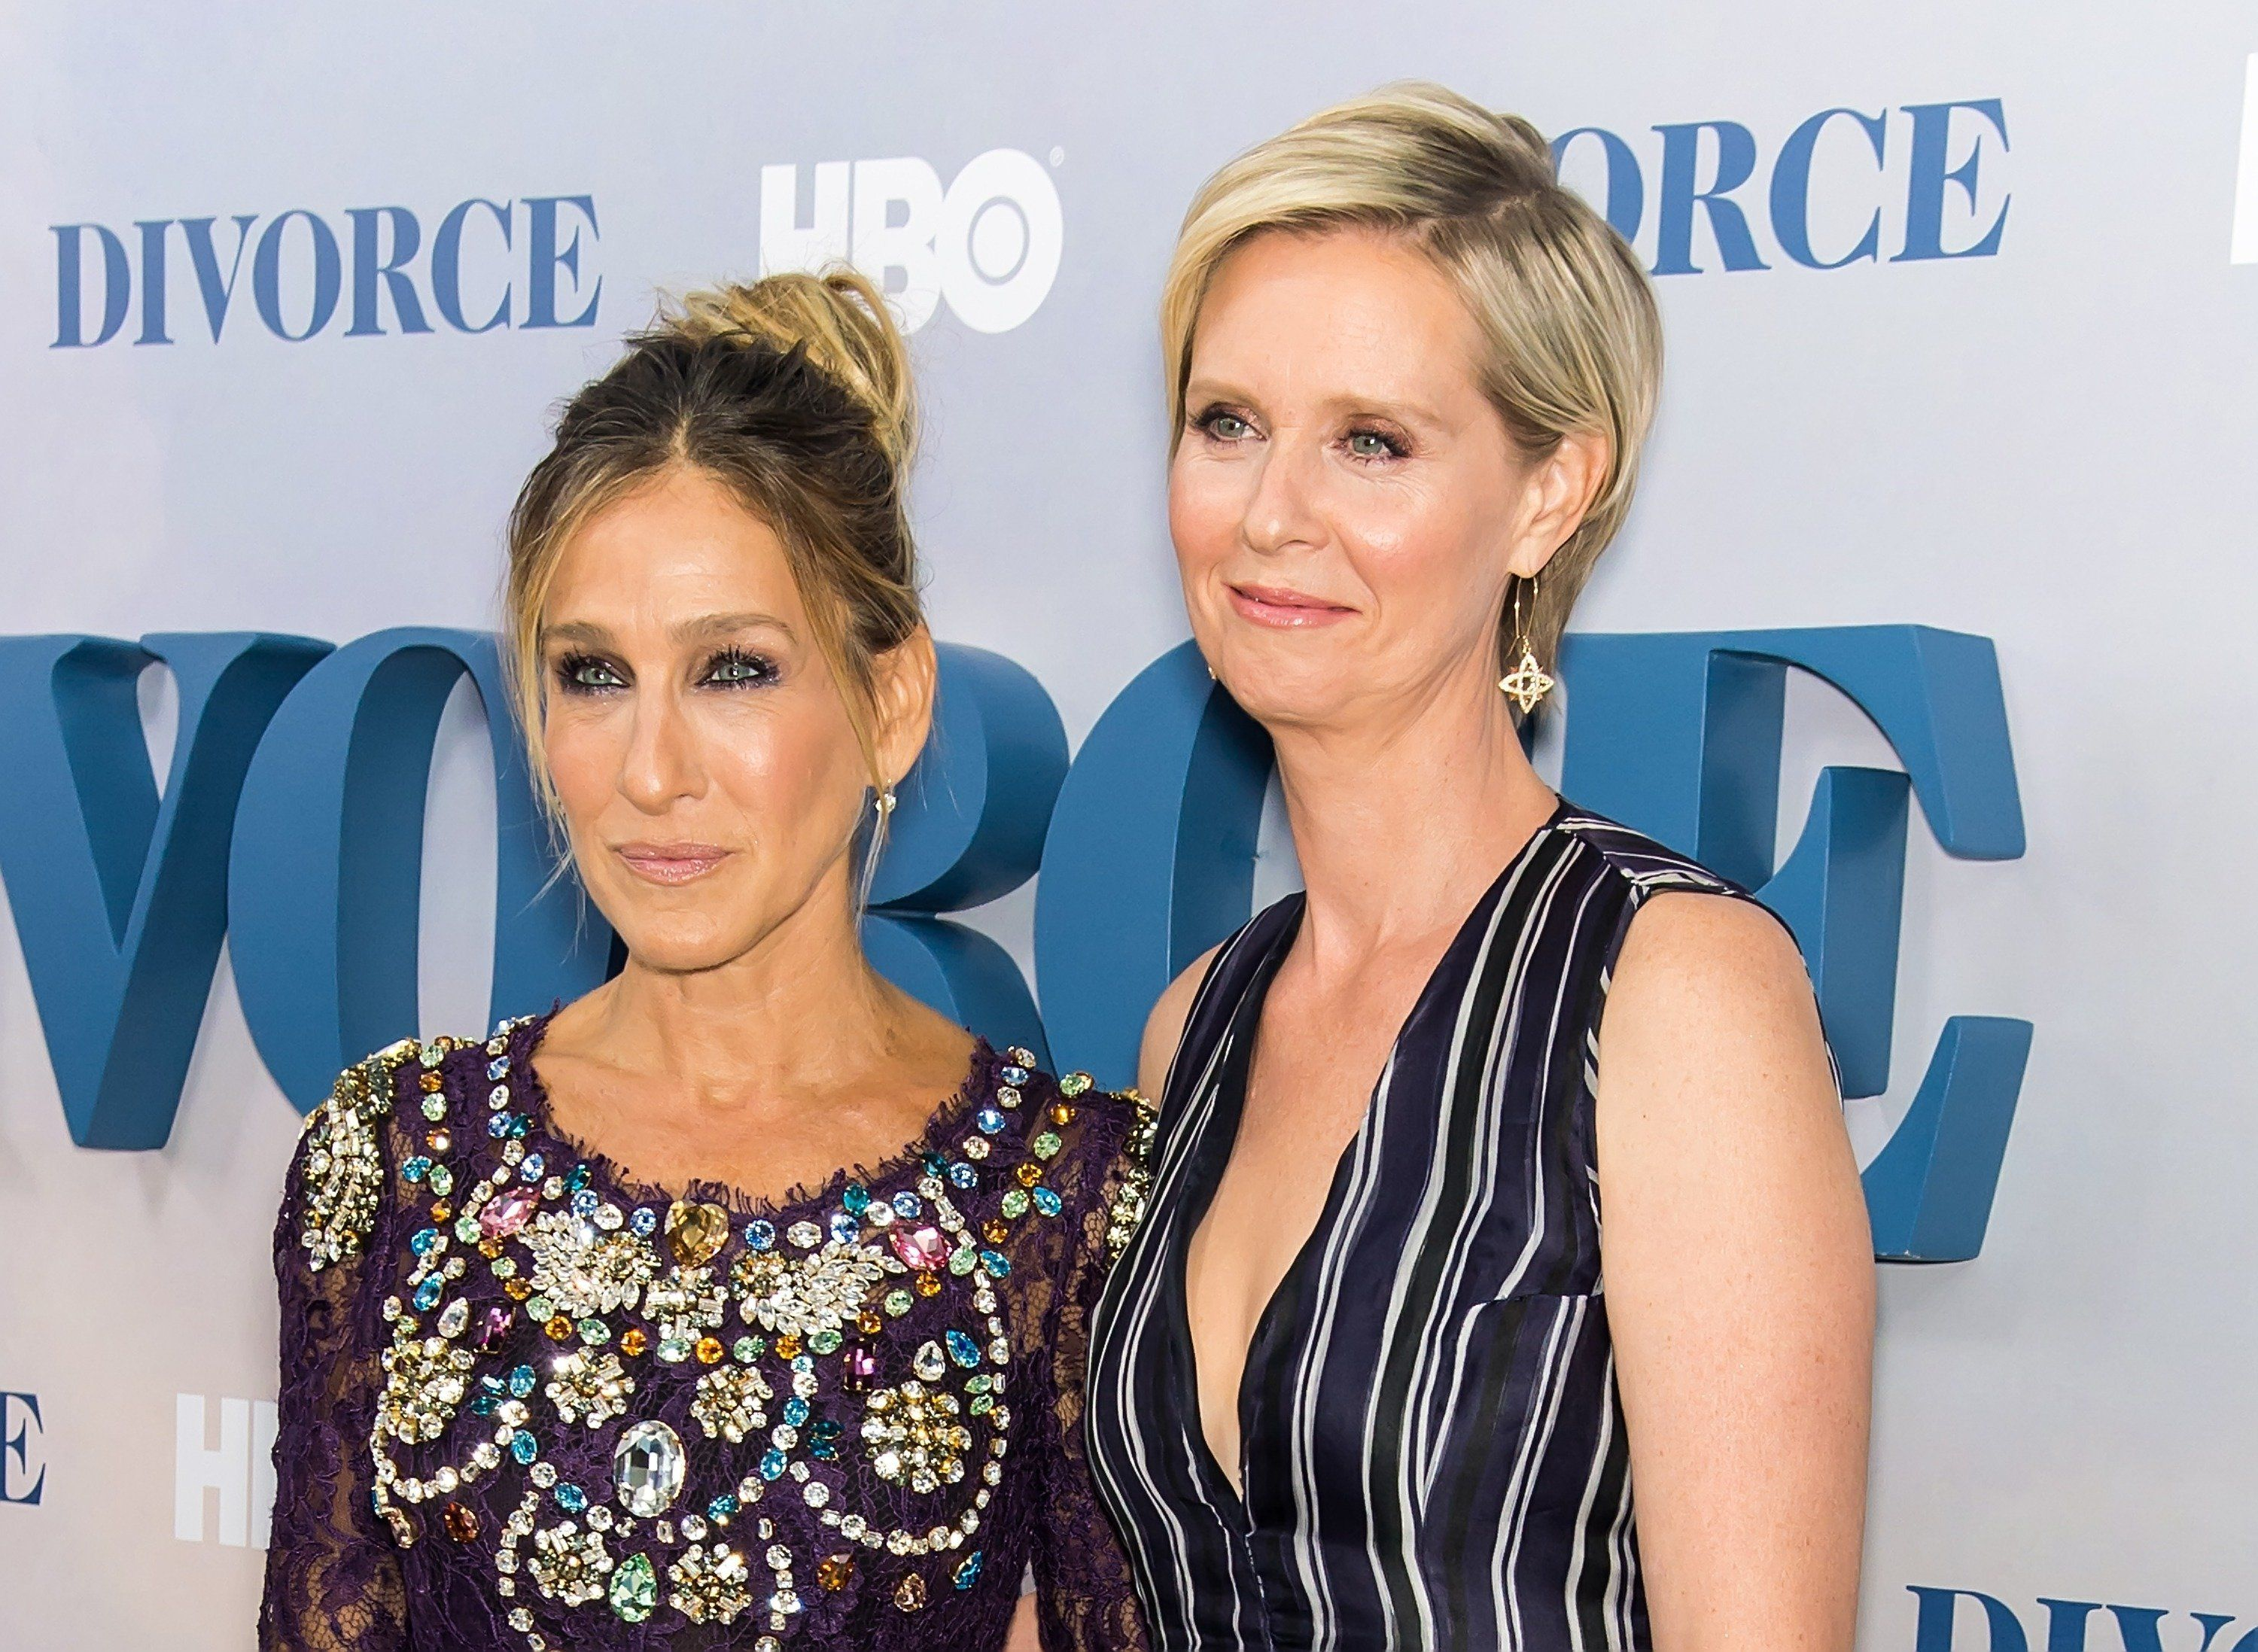 SJP endorses Cynthia Nixon's bid for governor